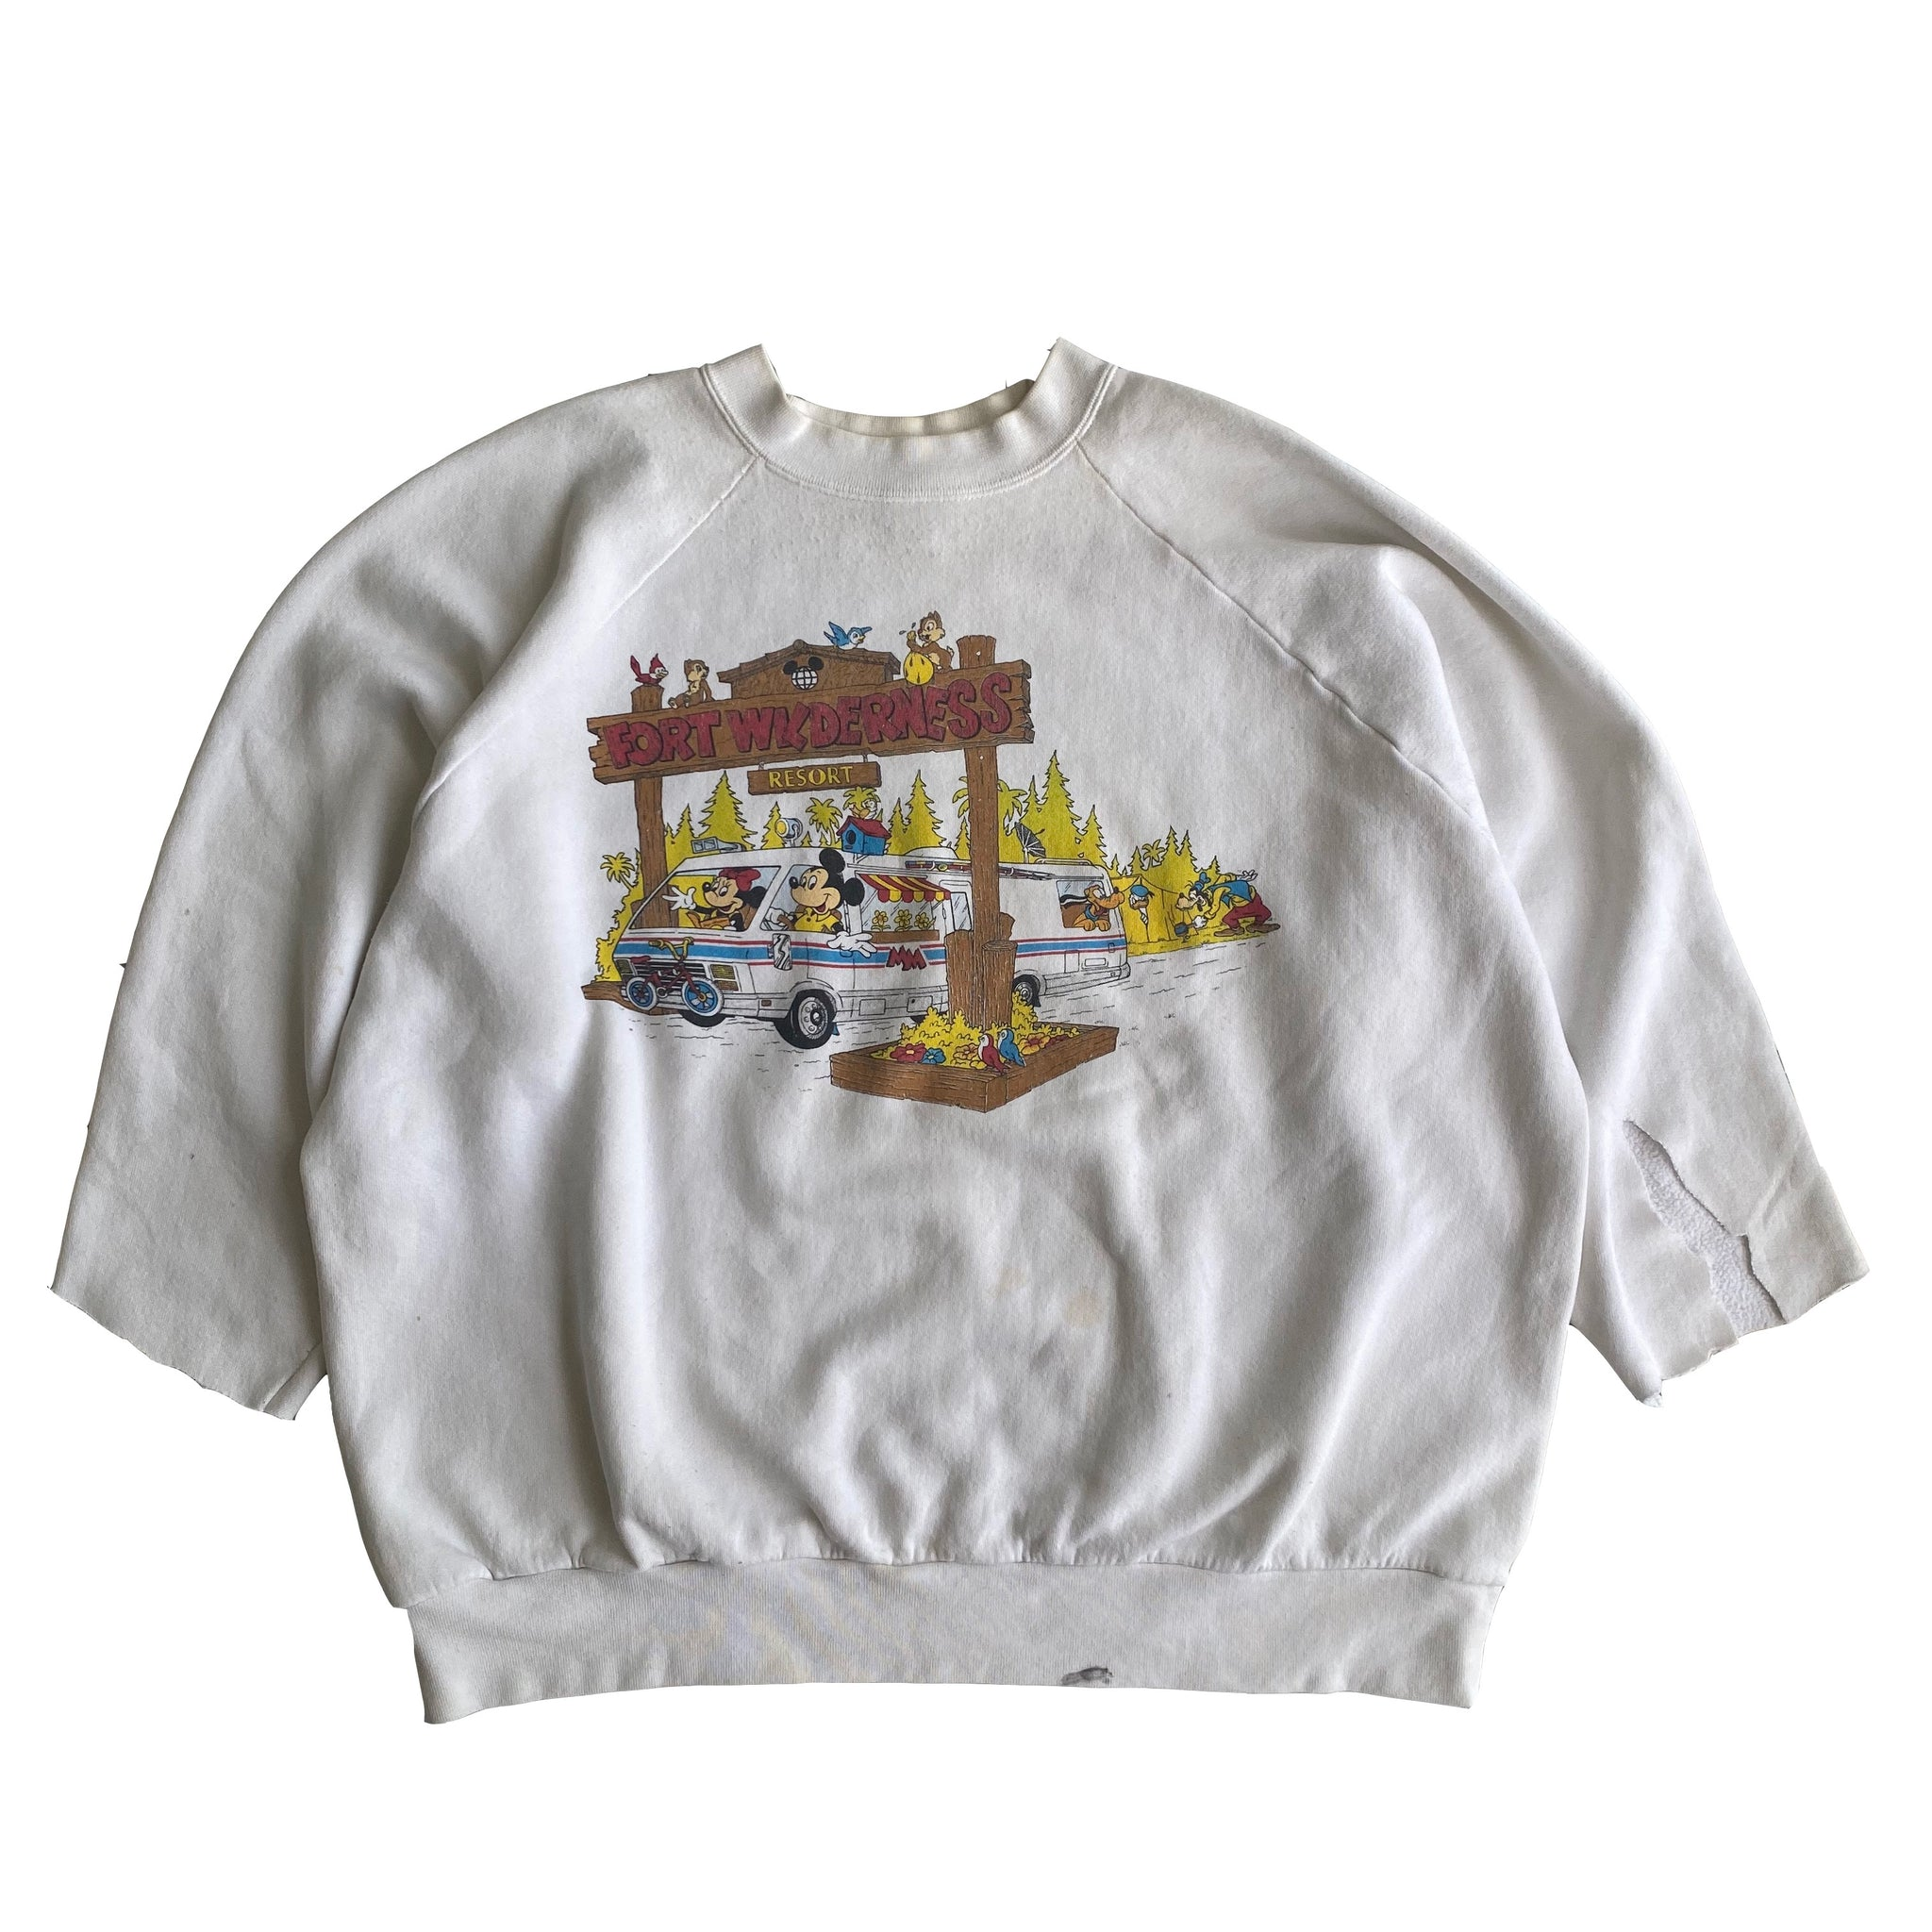 Fort Wilderness Crew - XXL - VTG 90s